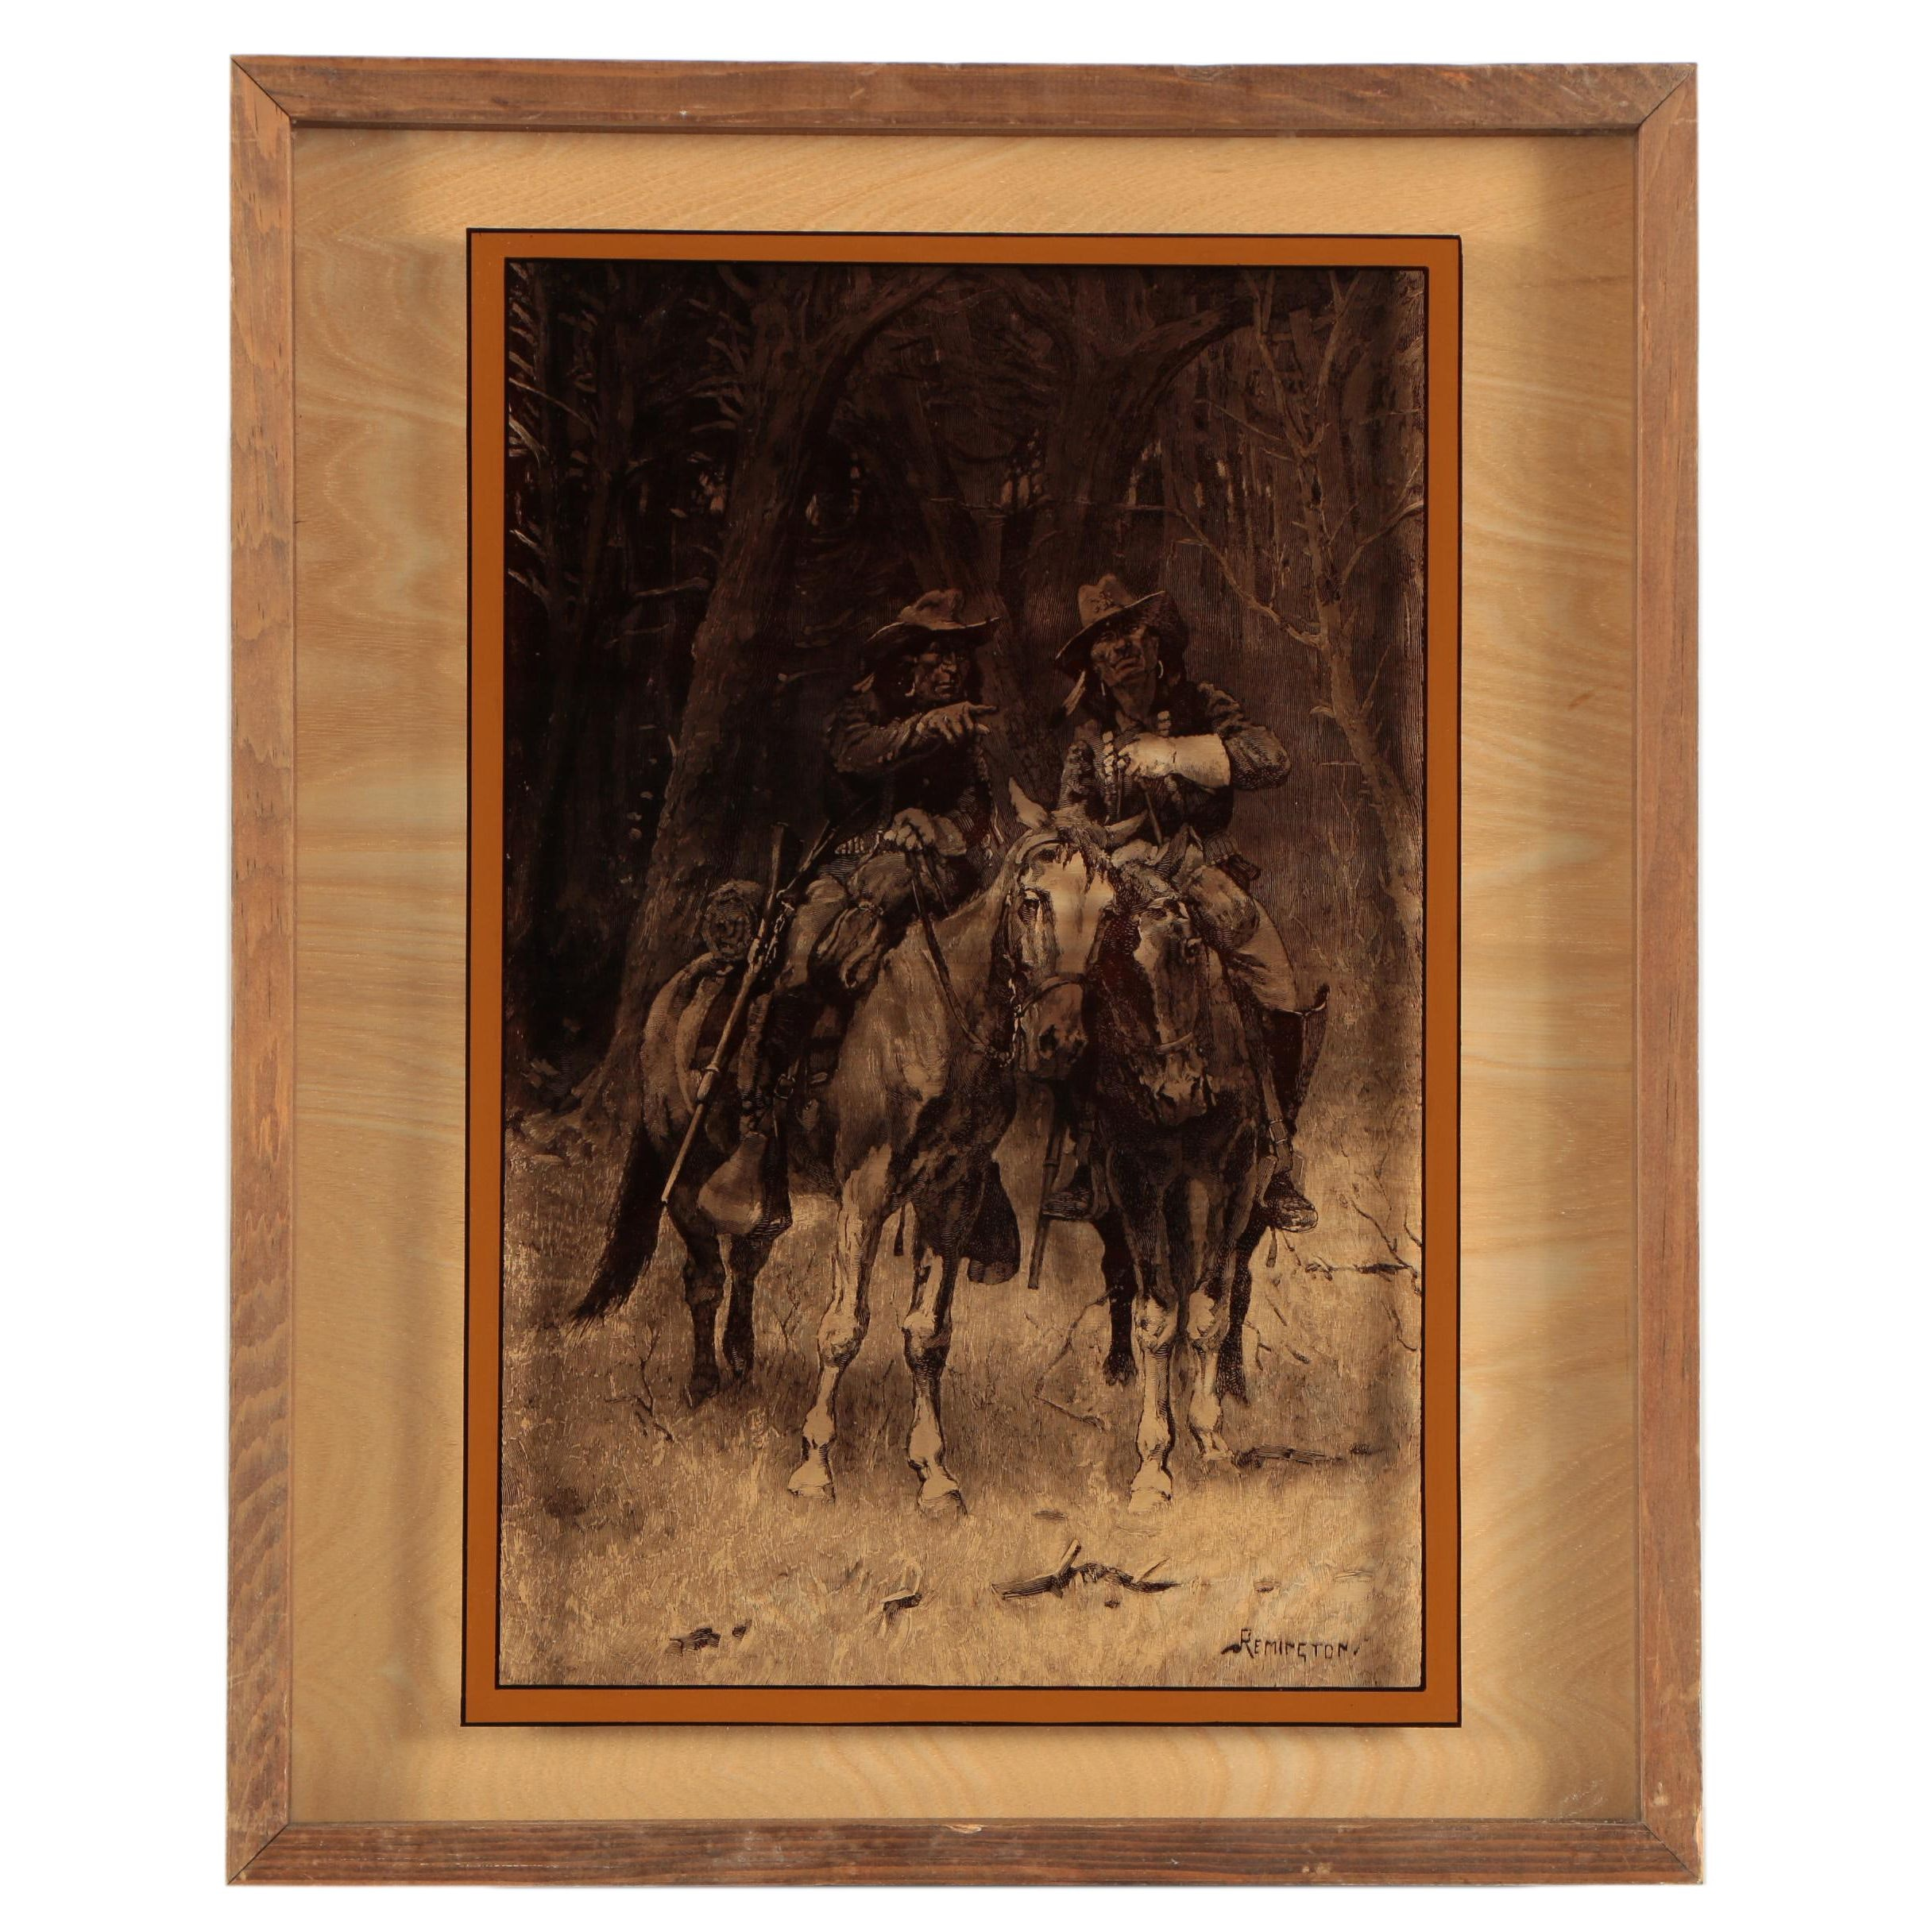 Lucid Lines 1974 Reproduction Print on Glass After Frederic Remington